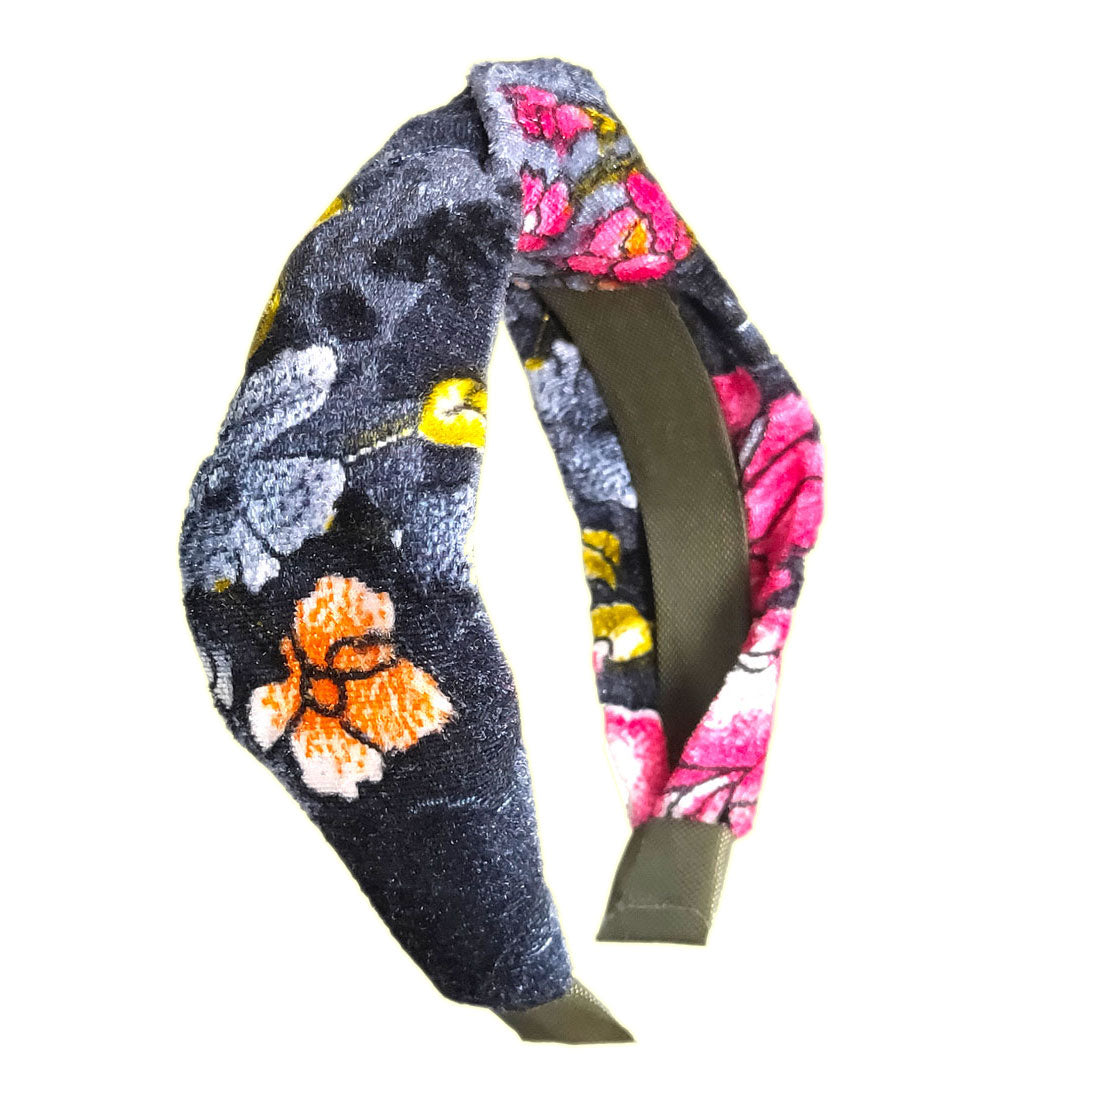 Anokhi Ada Handmade Multi-Colour Floral Design Velvet Knot Hairband/Headband for Girls and Women -14-19H